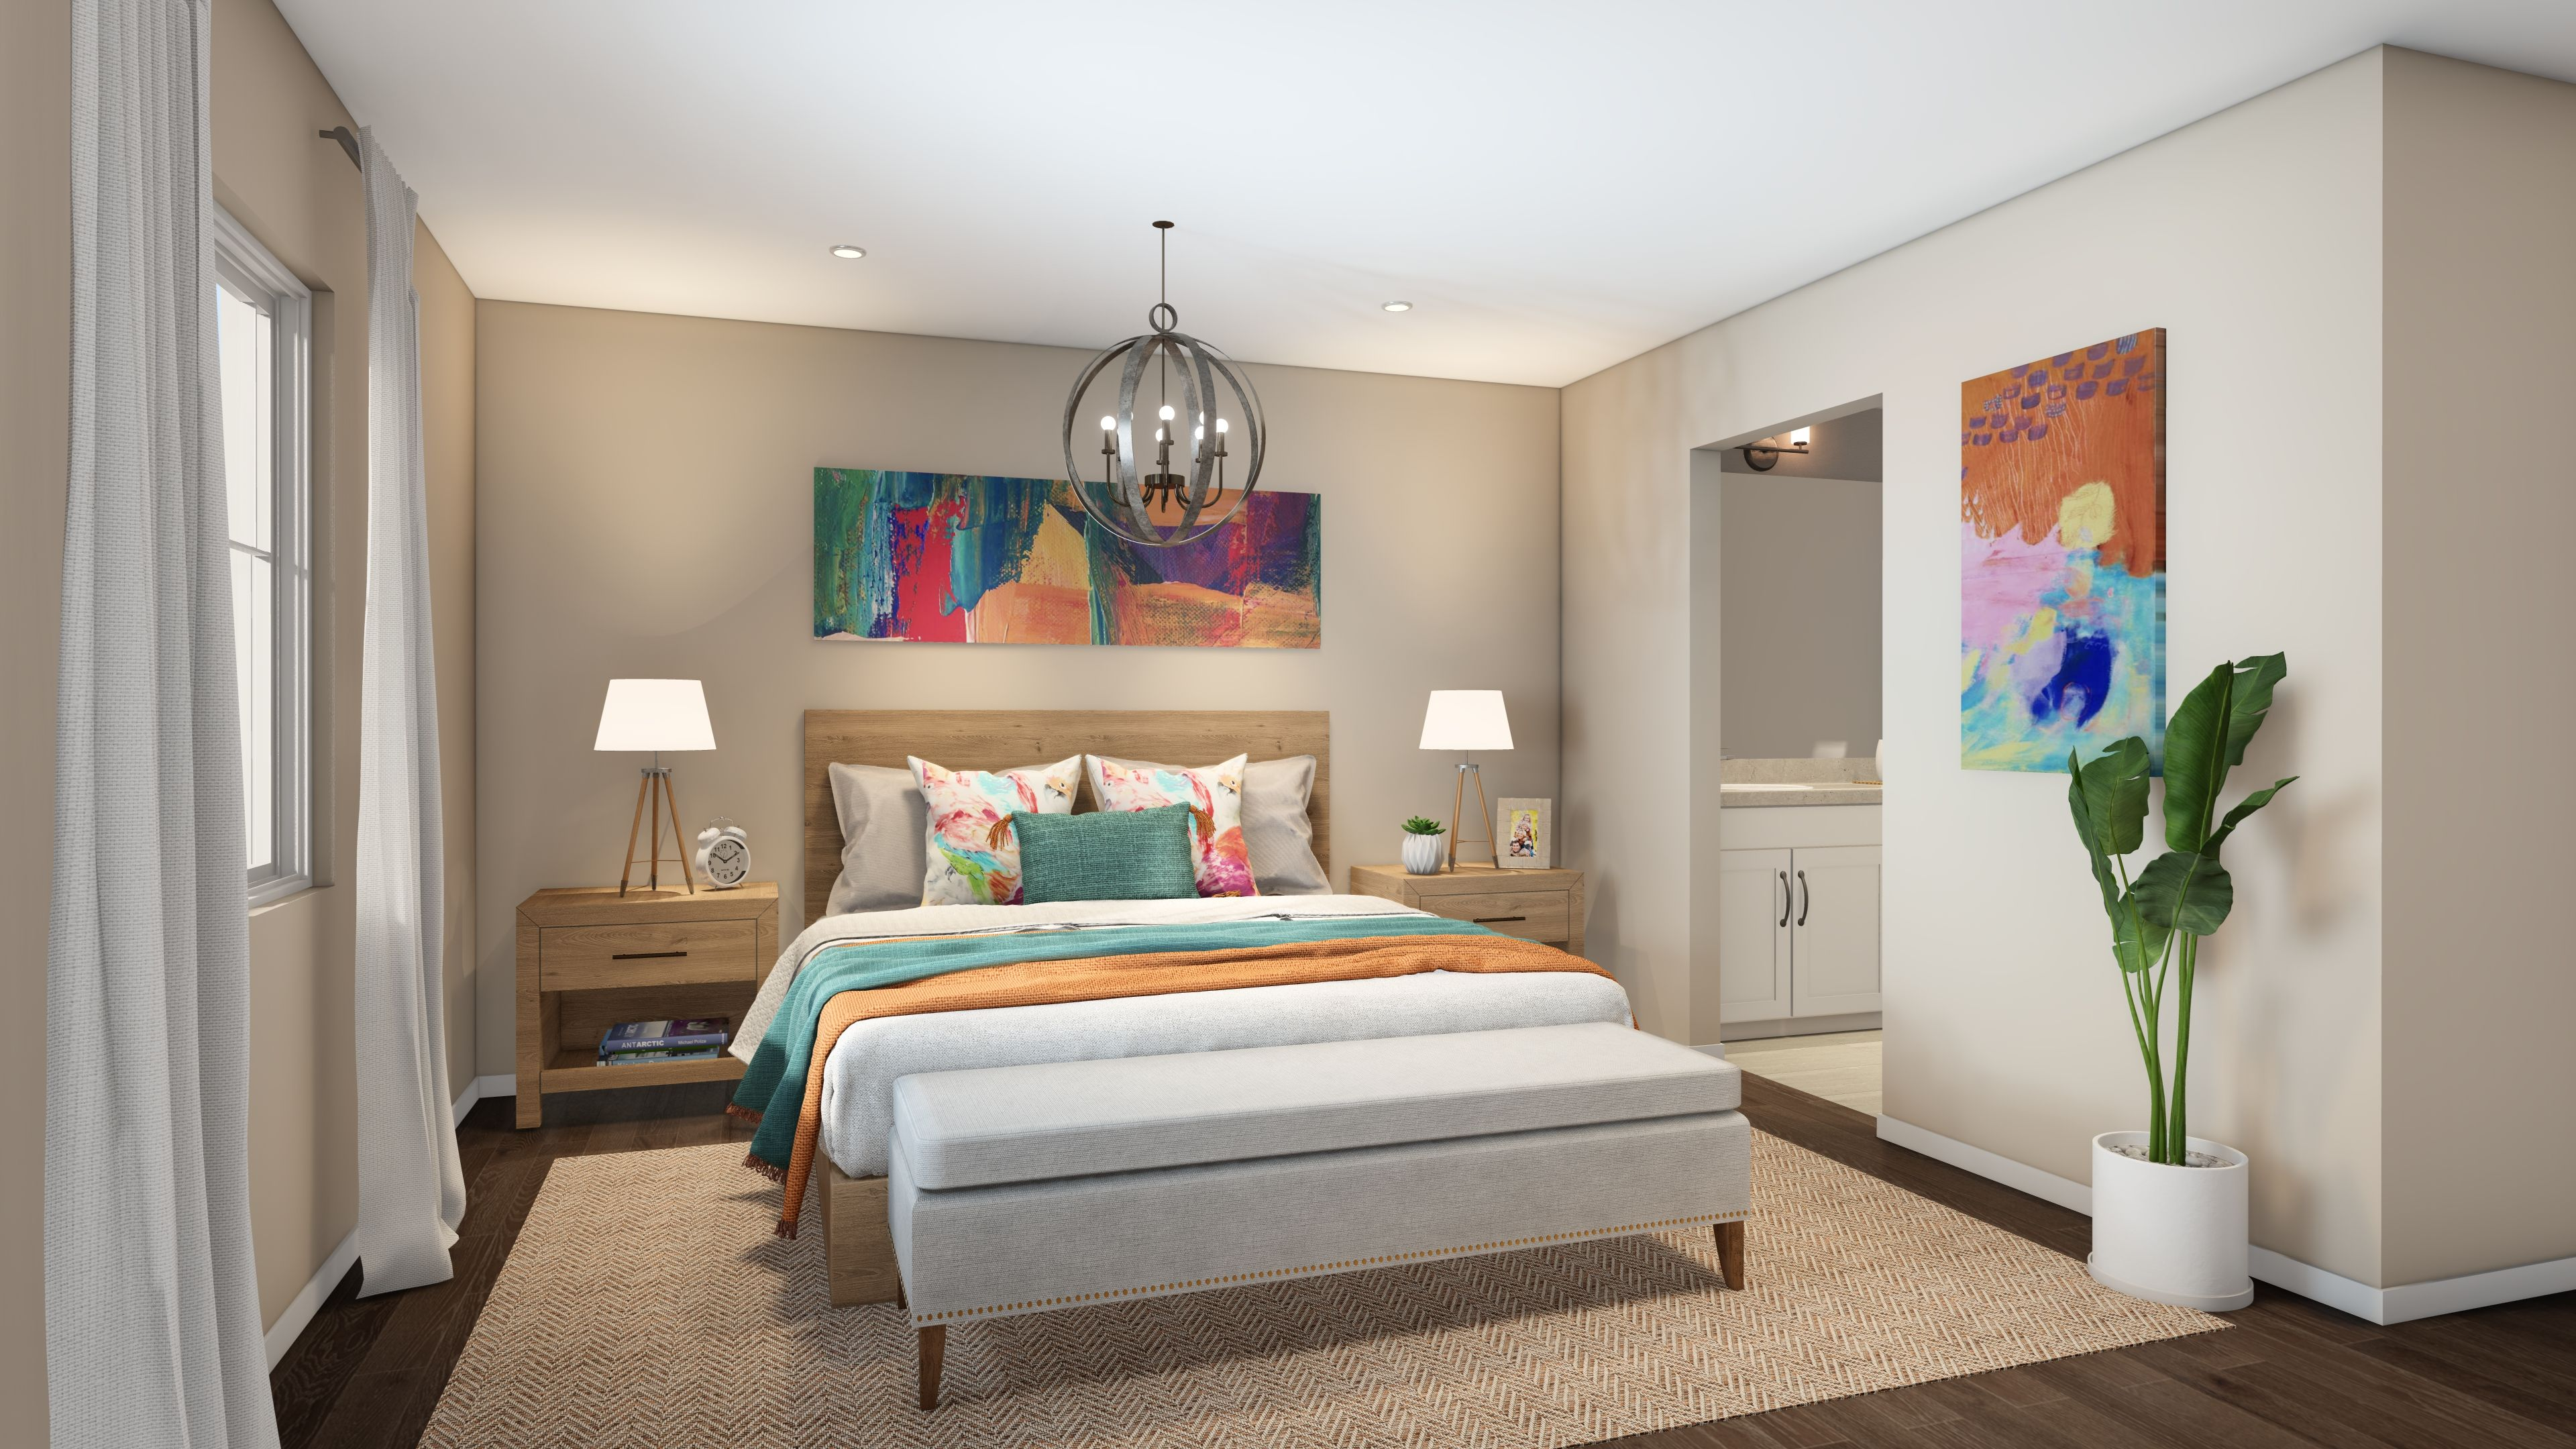 Bedroom featured in the Plan 2 By R at Righetti in San Luis Obispo, CA